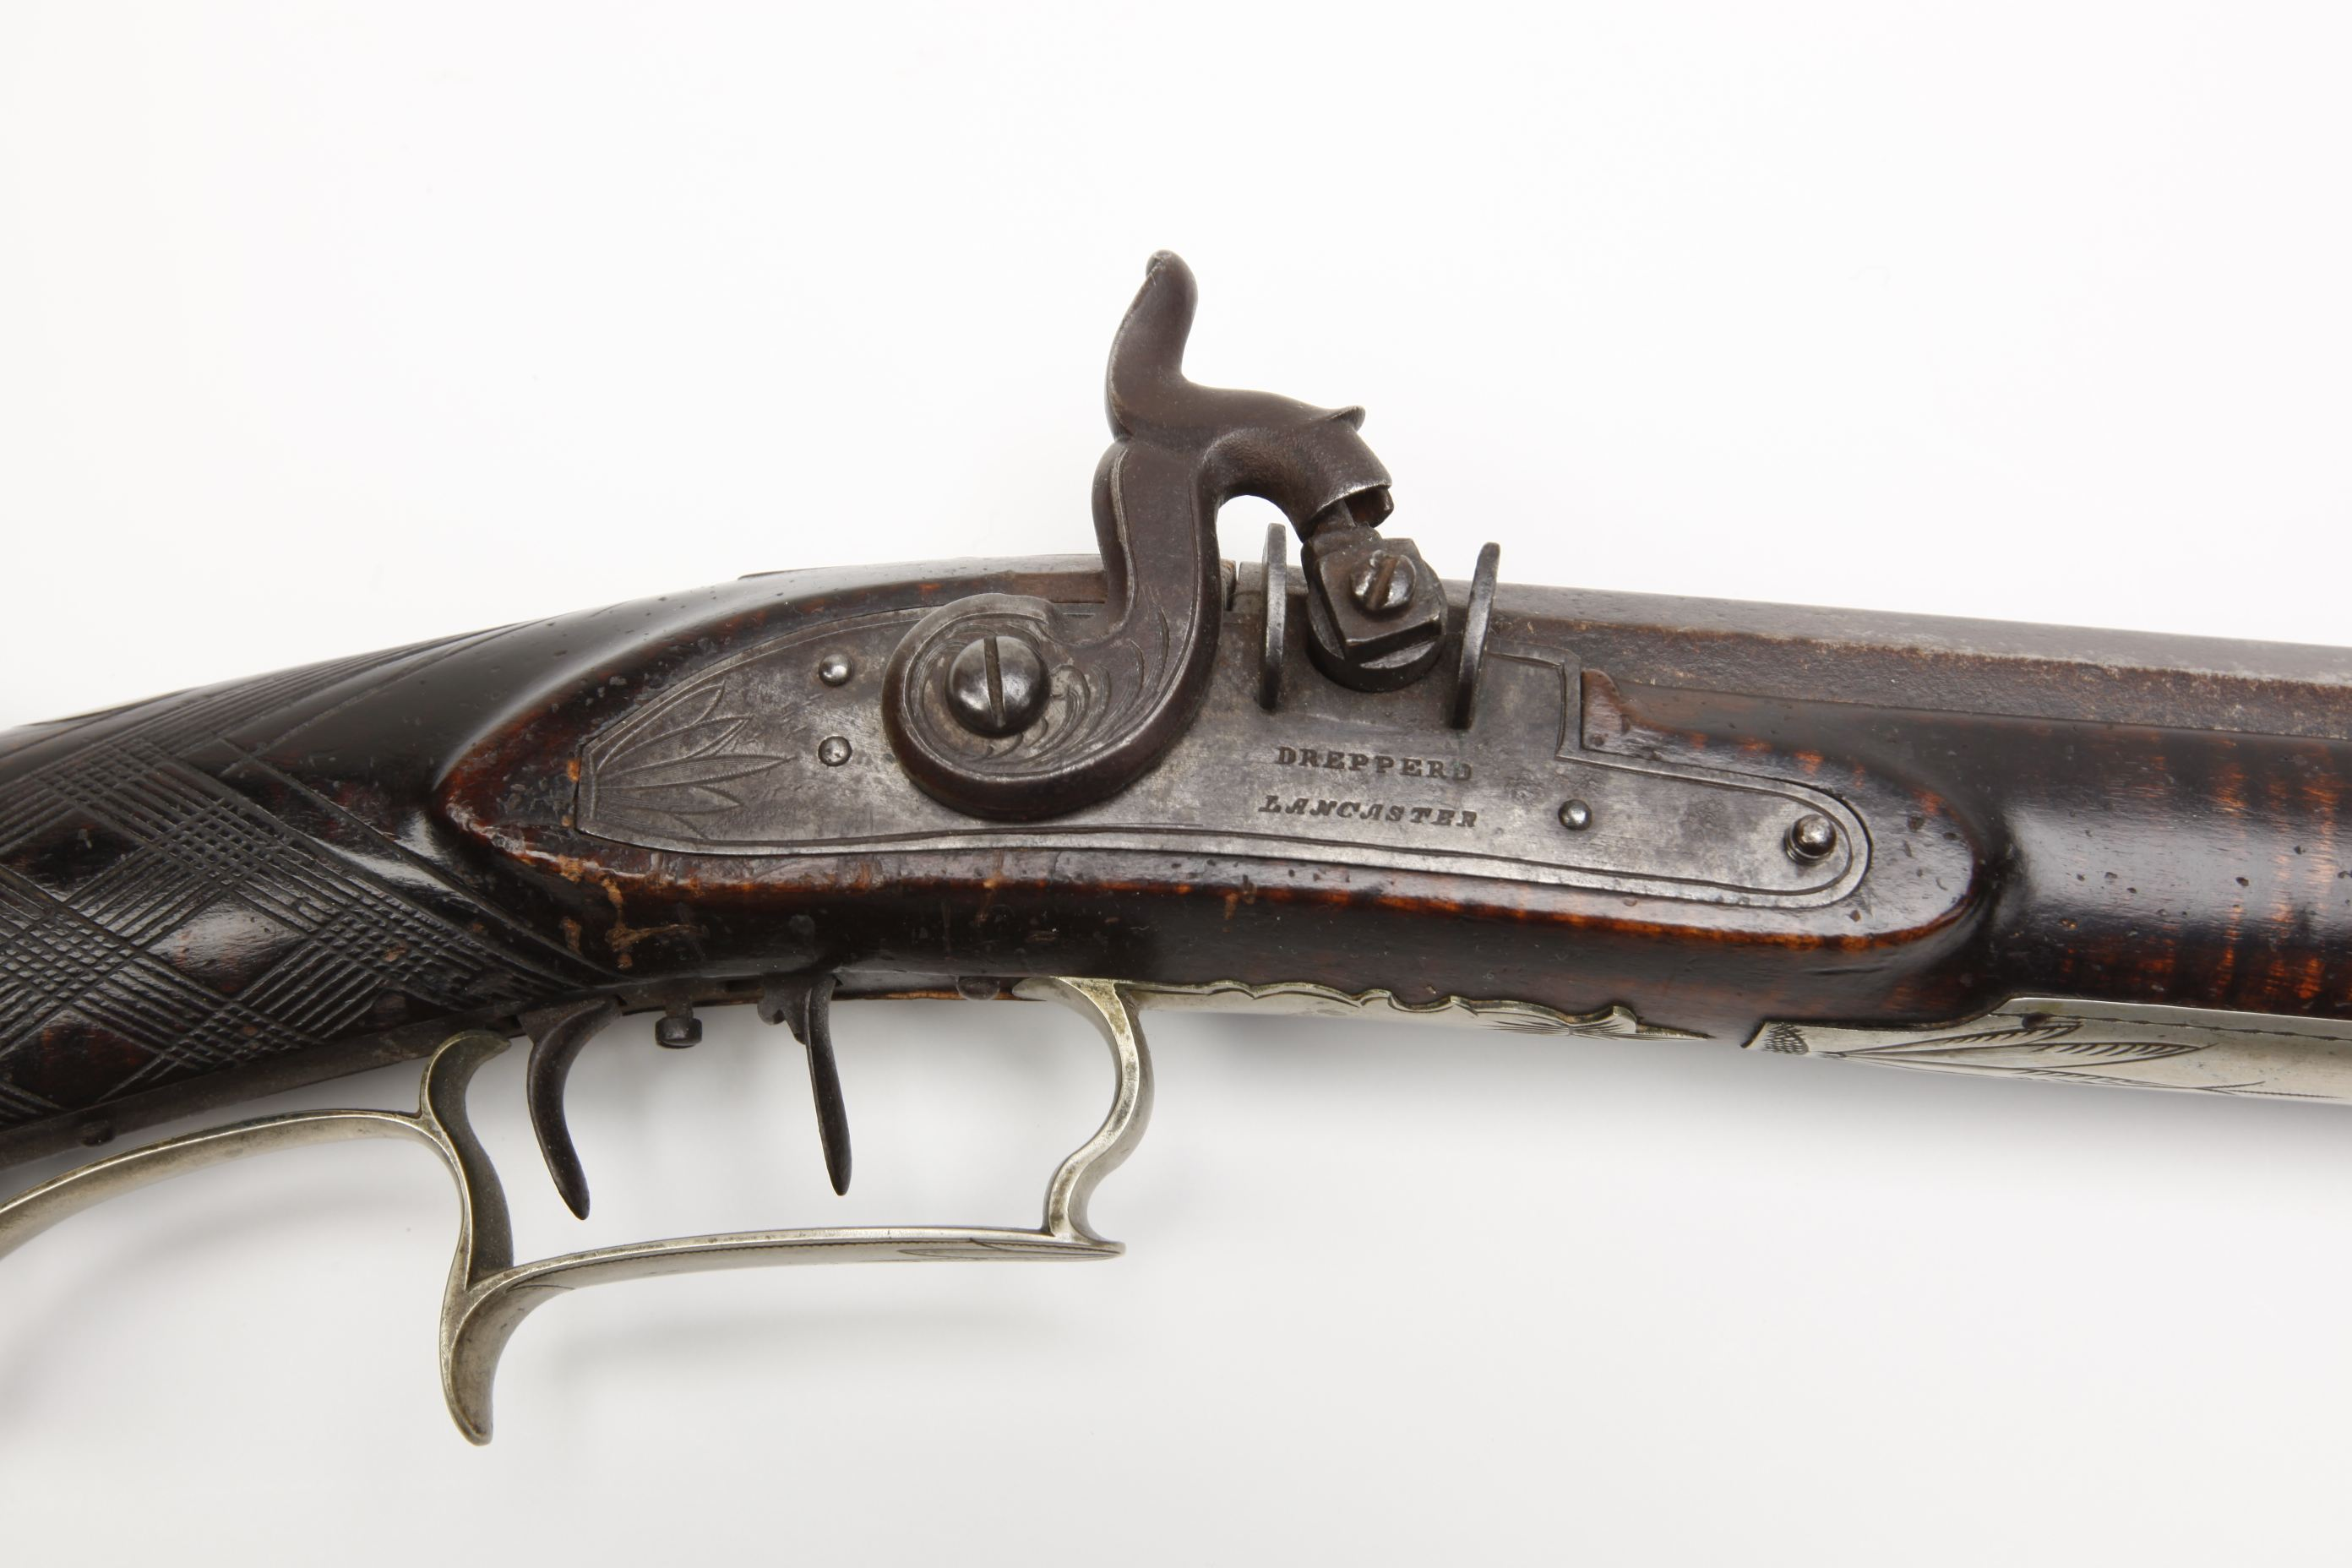 Henry Drepperd (Lancaster, PA) Pennsylvania/Kentucky Percussion Rifle